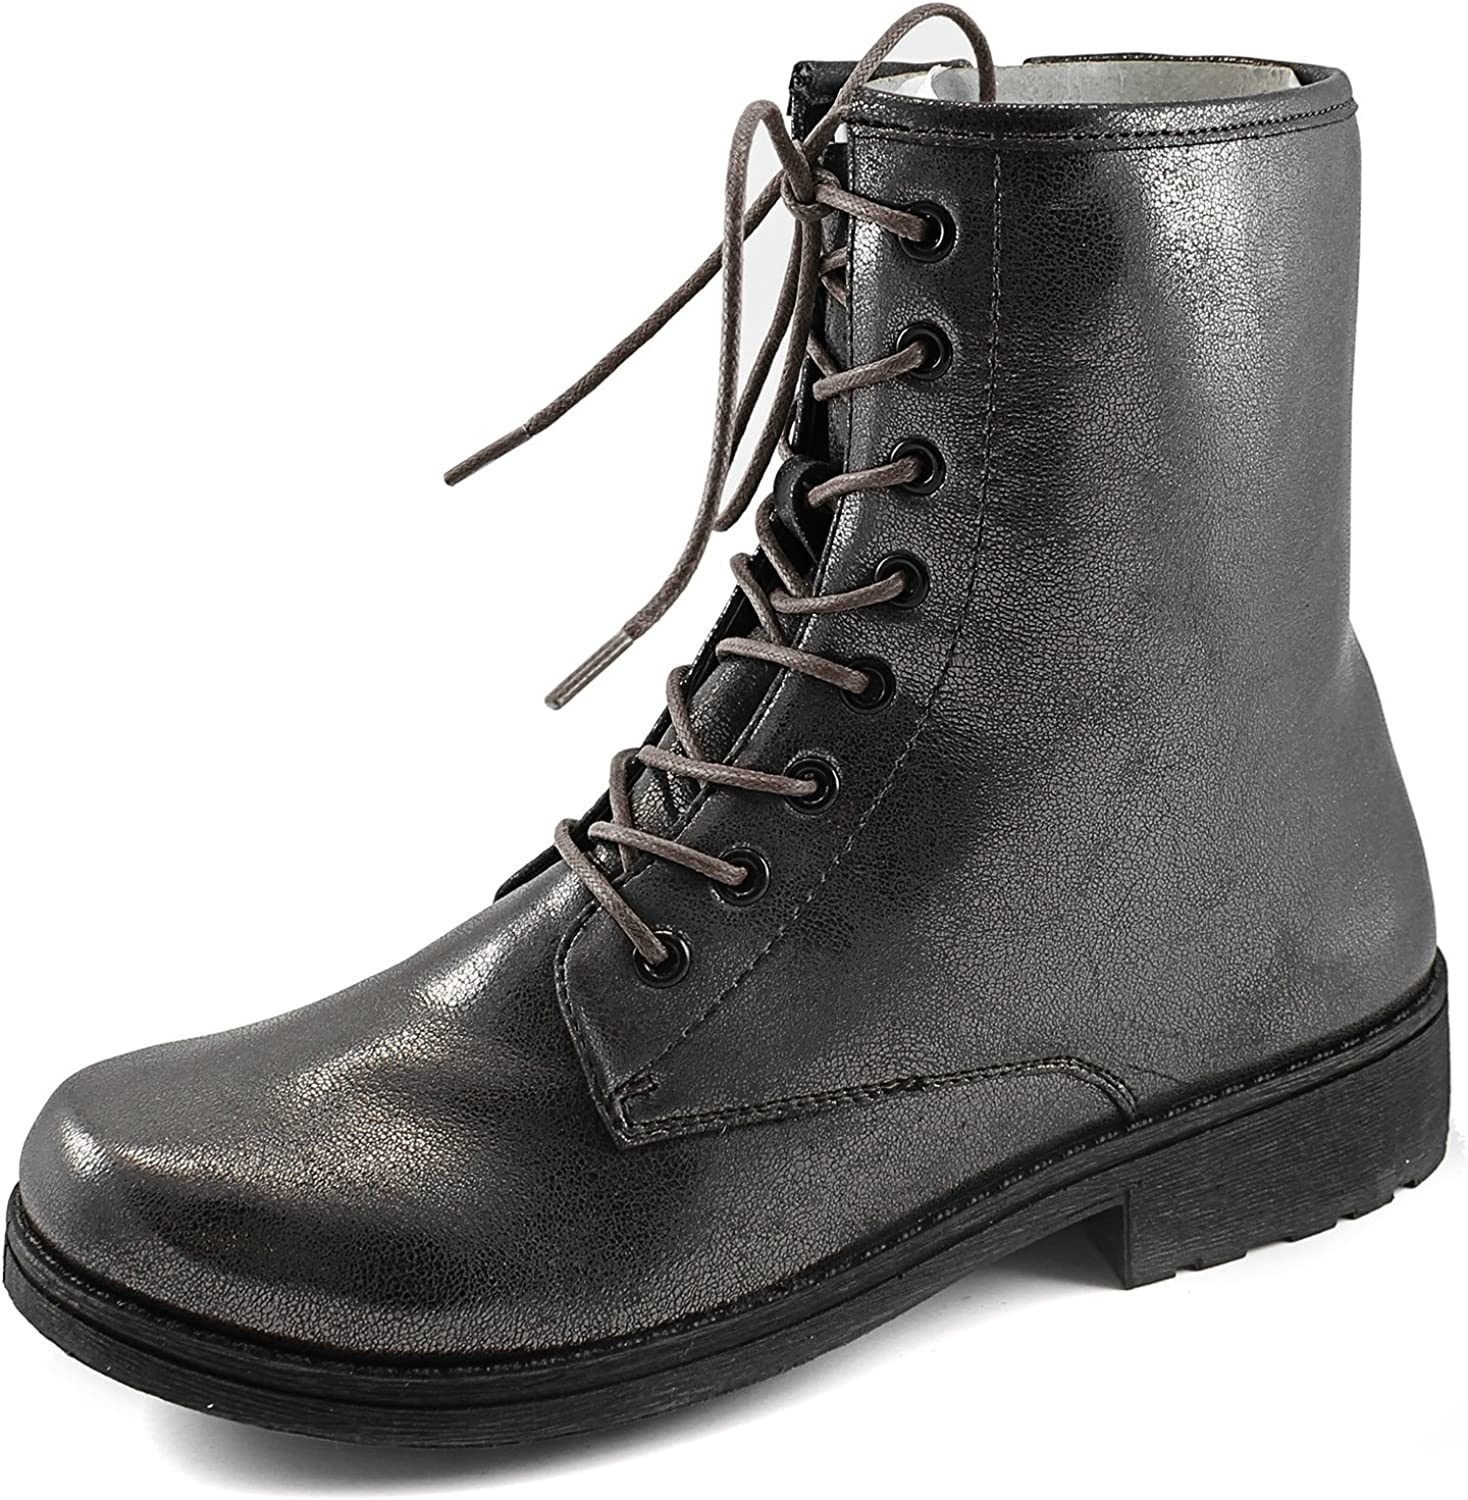 Women's Qupid Missile-04 Military Up Bootie Pewter